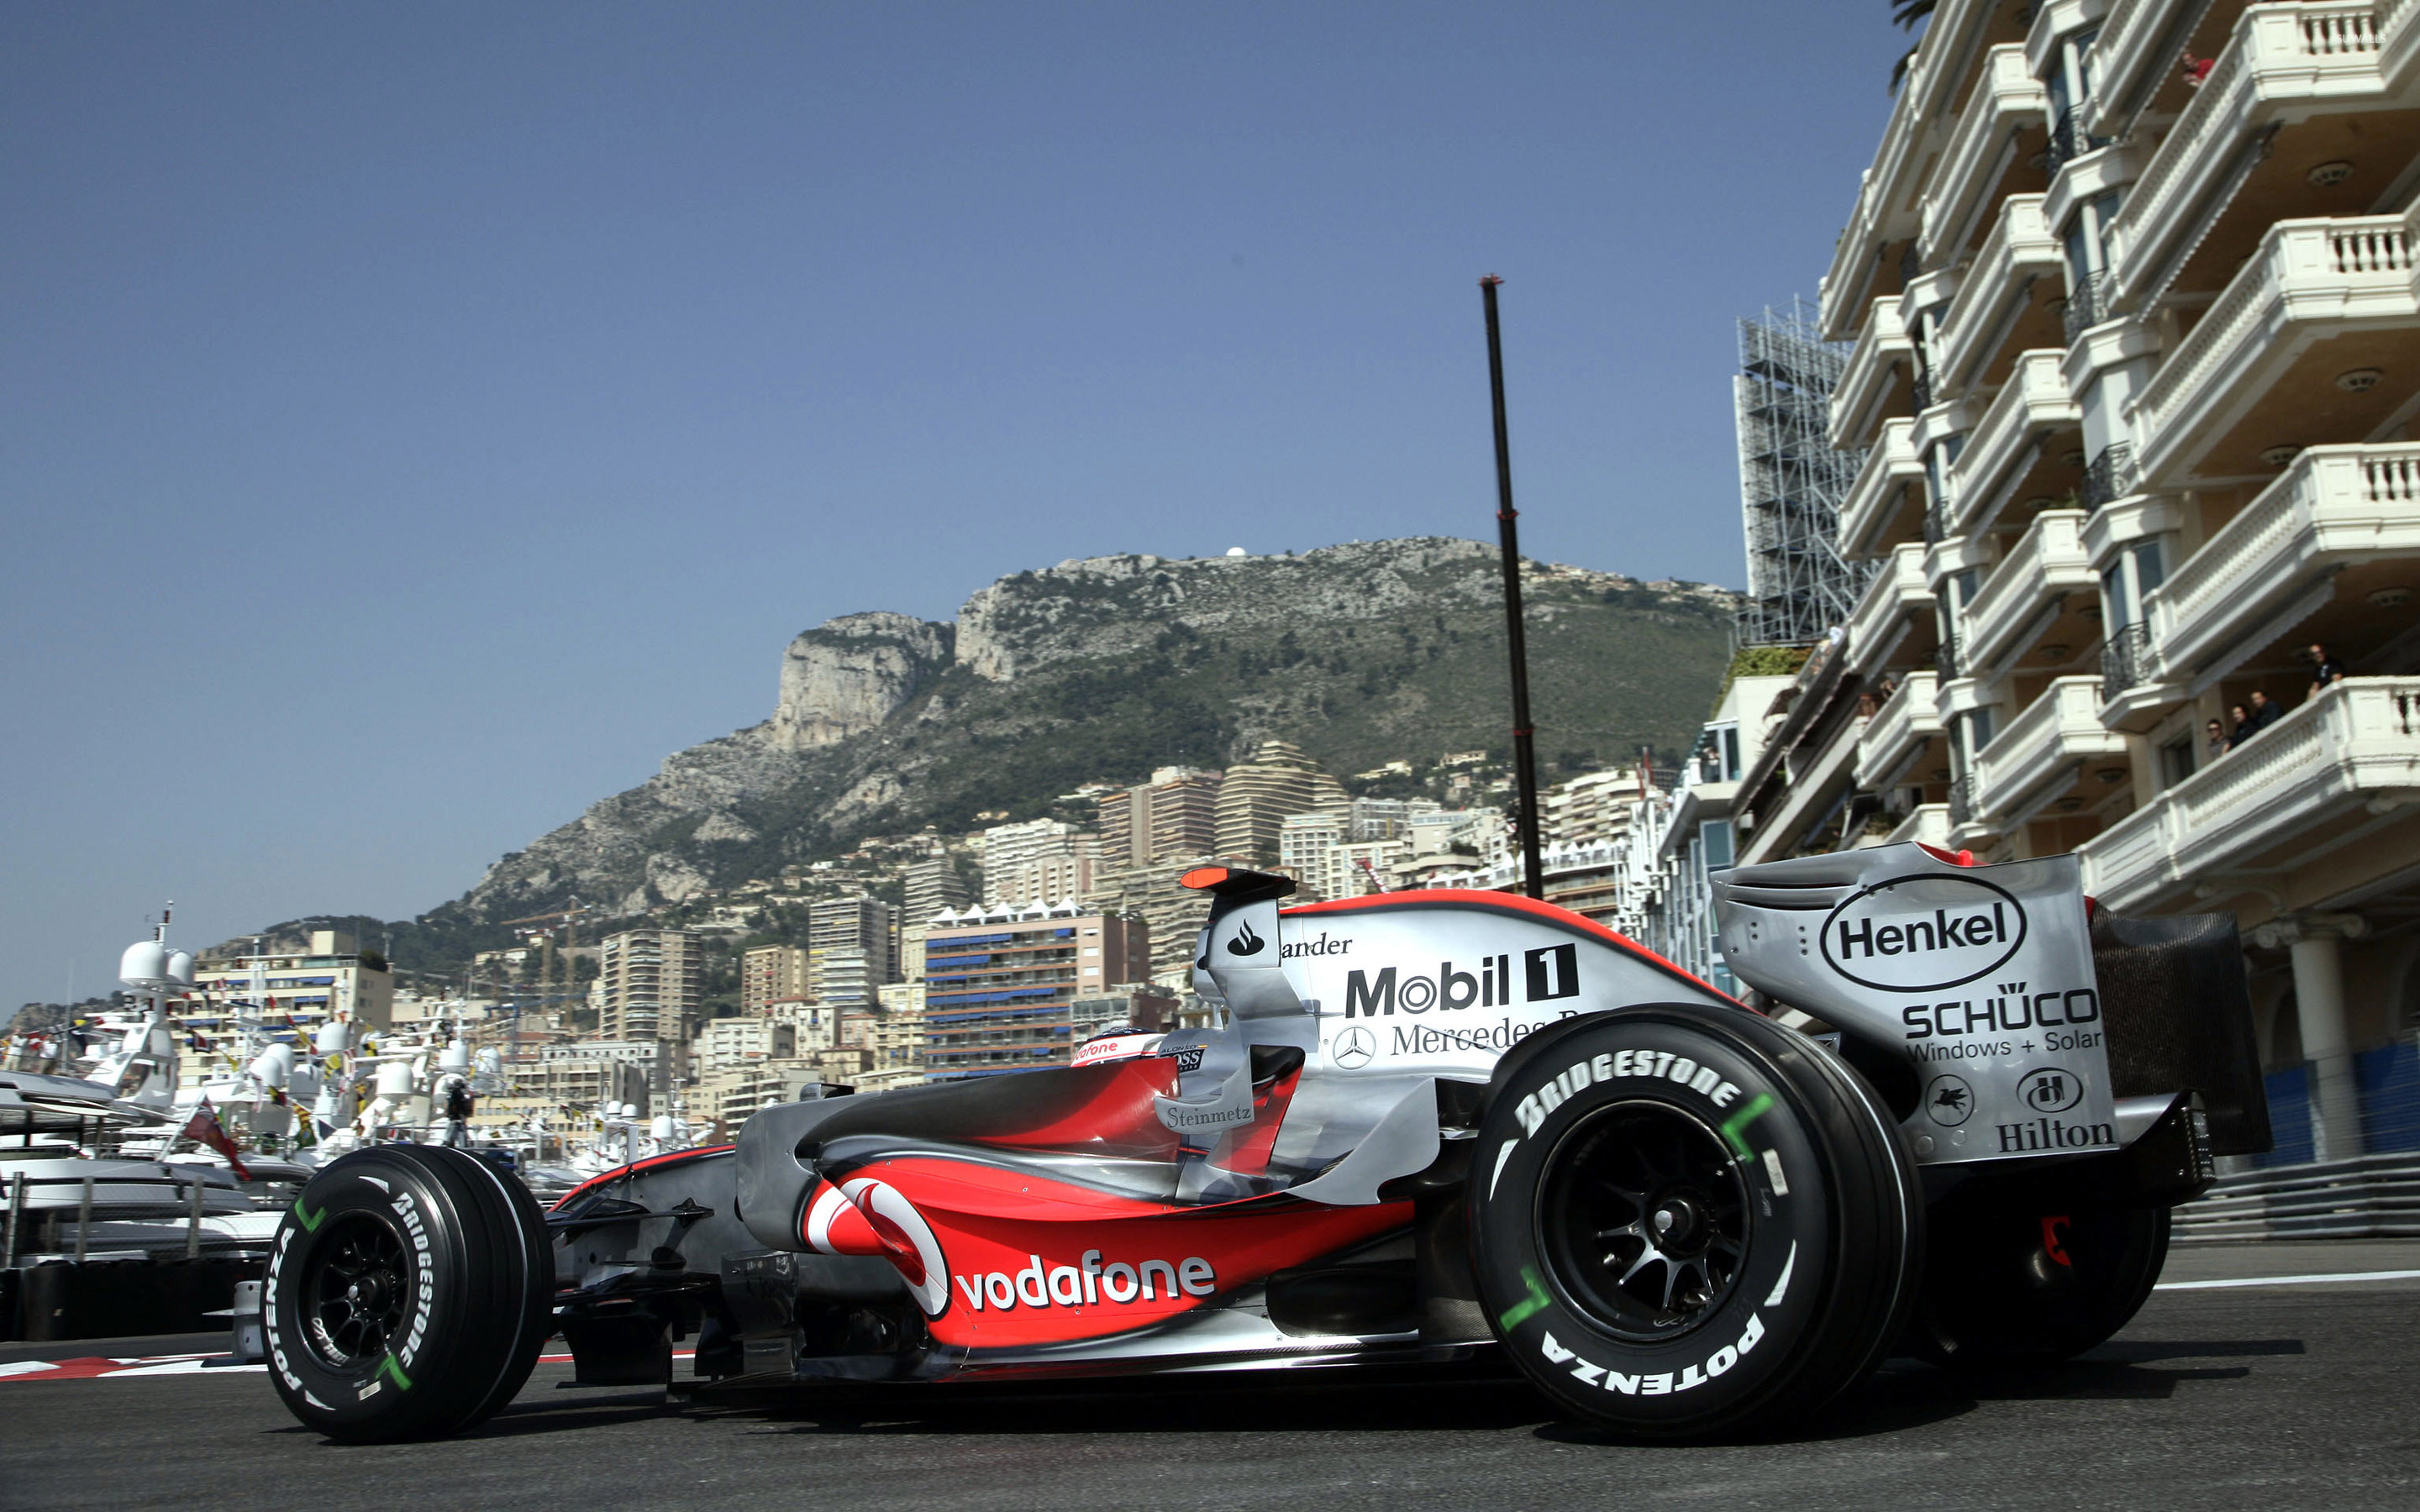 Mercedes Sports Cars Wallpapers F1 Monaco Wallpaper Car Wallpapers 30253